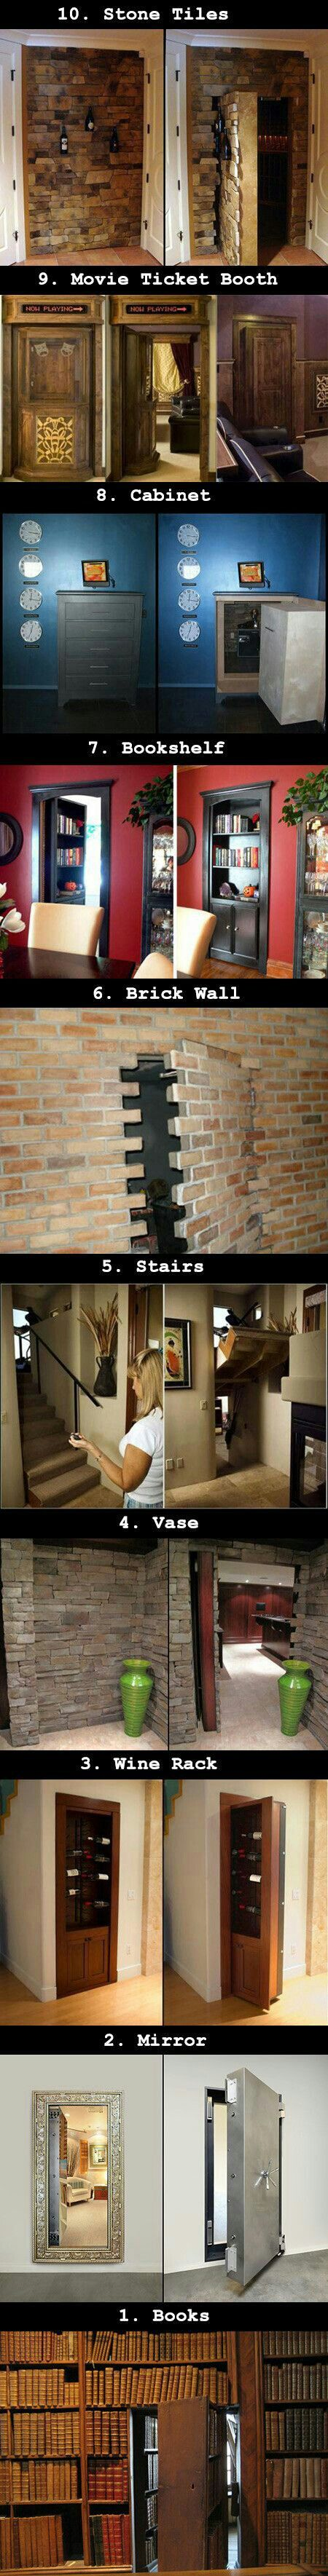 best Hidden Doors images on Pinterest Home ideas Good ideas